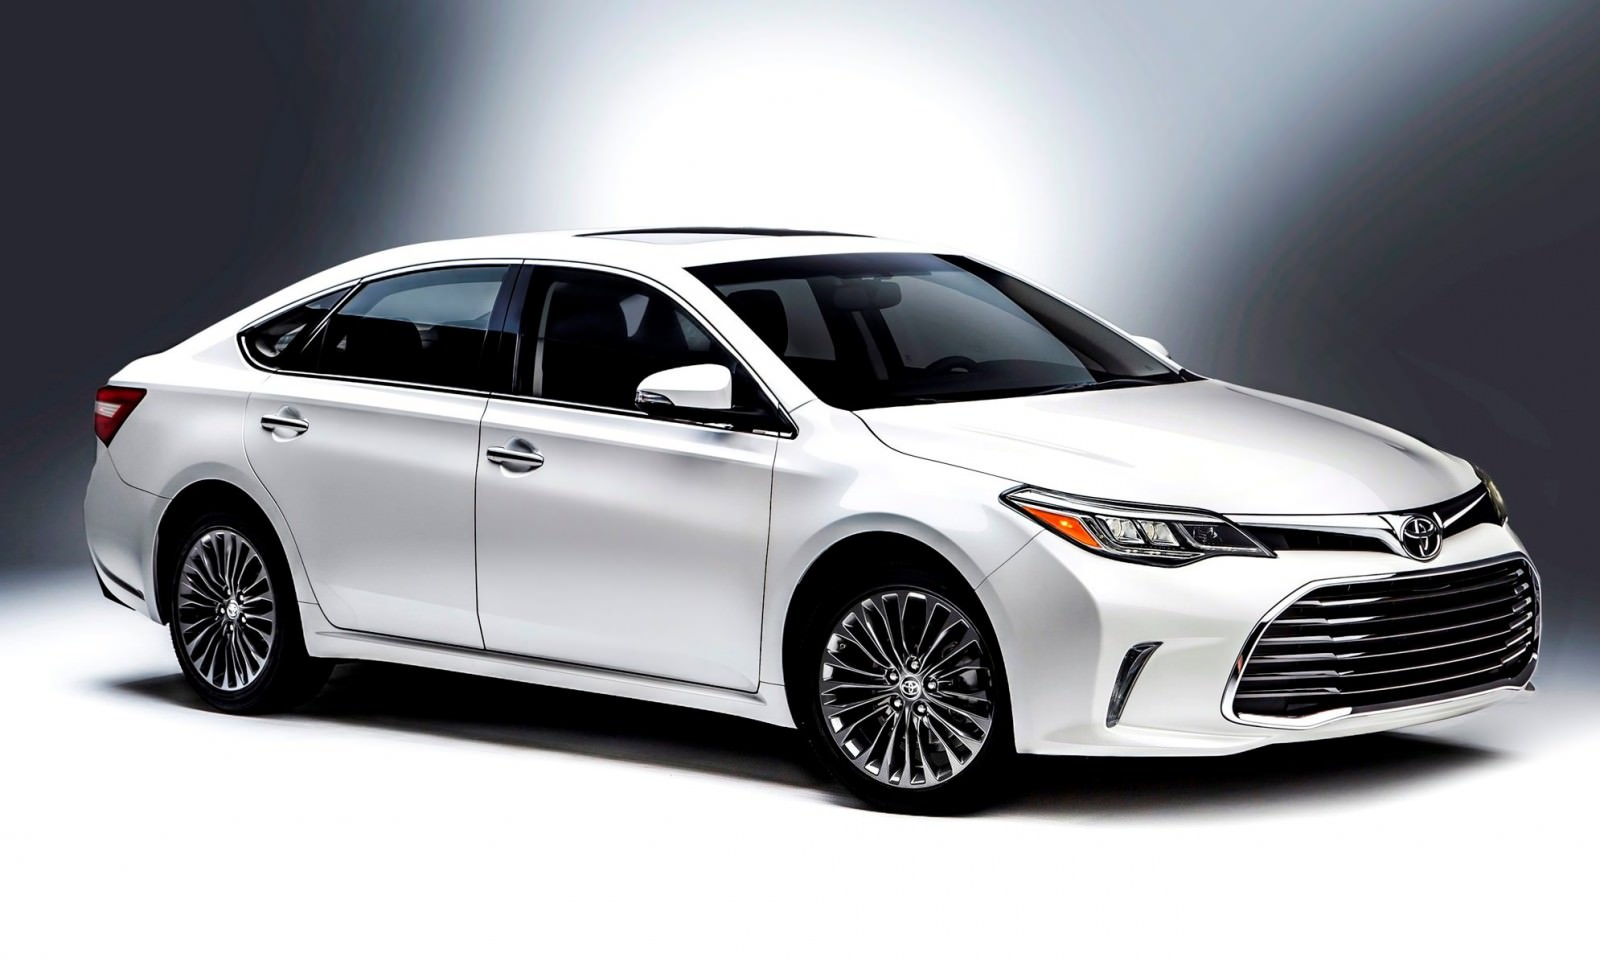 2016 toyota avalon. Black Bedroom Furniture Sets. Home Design Ideas